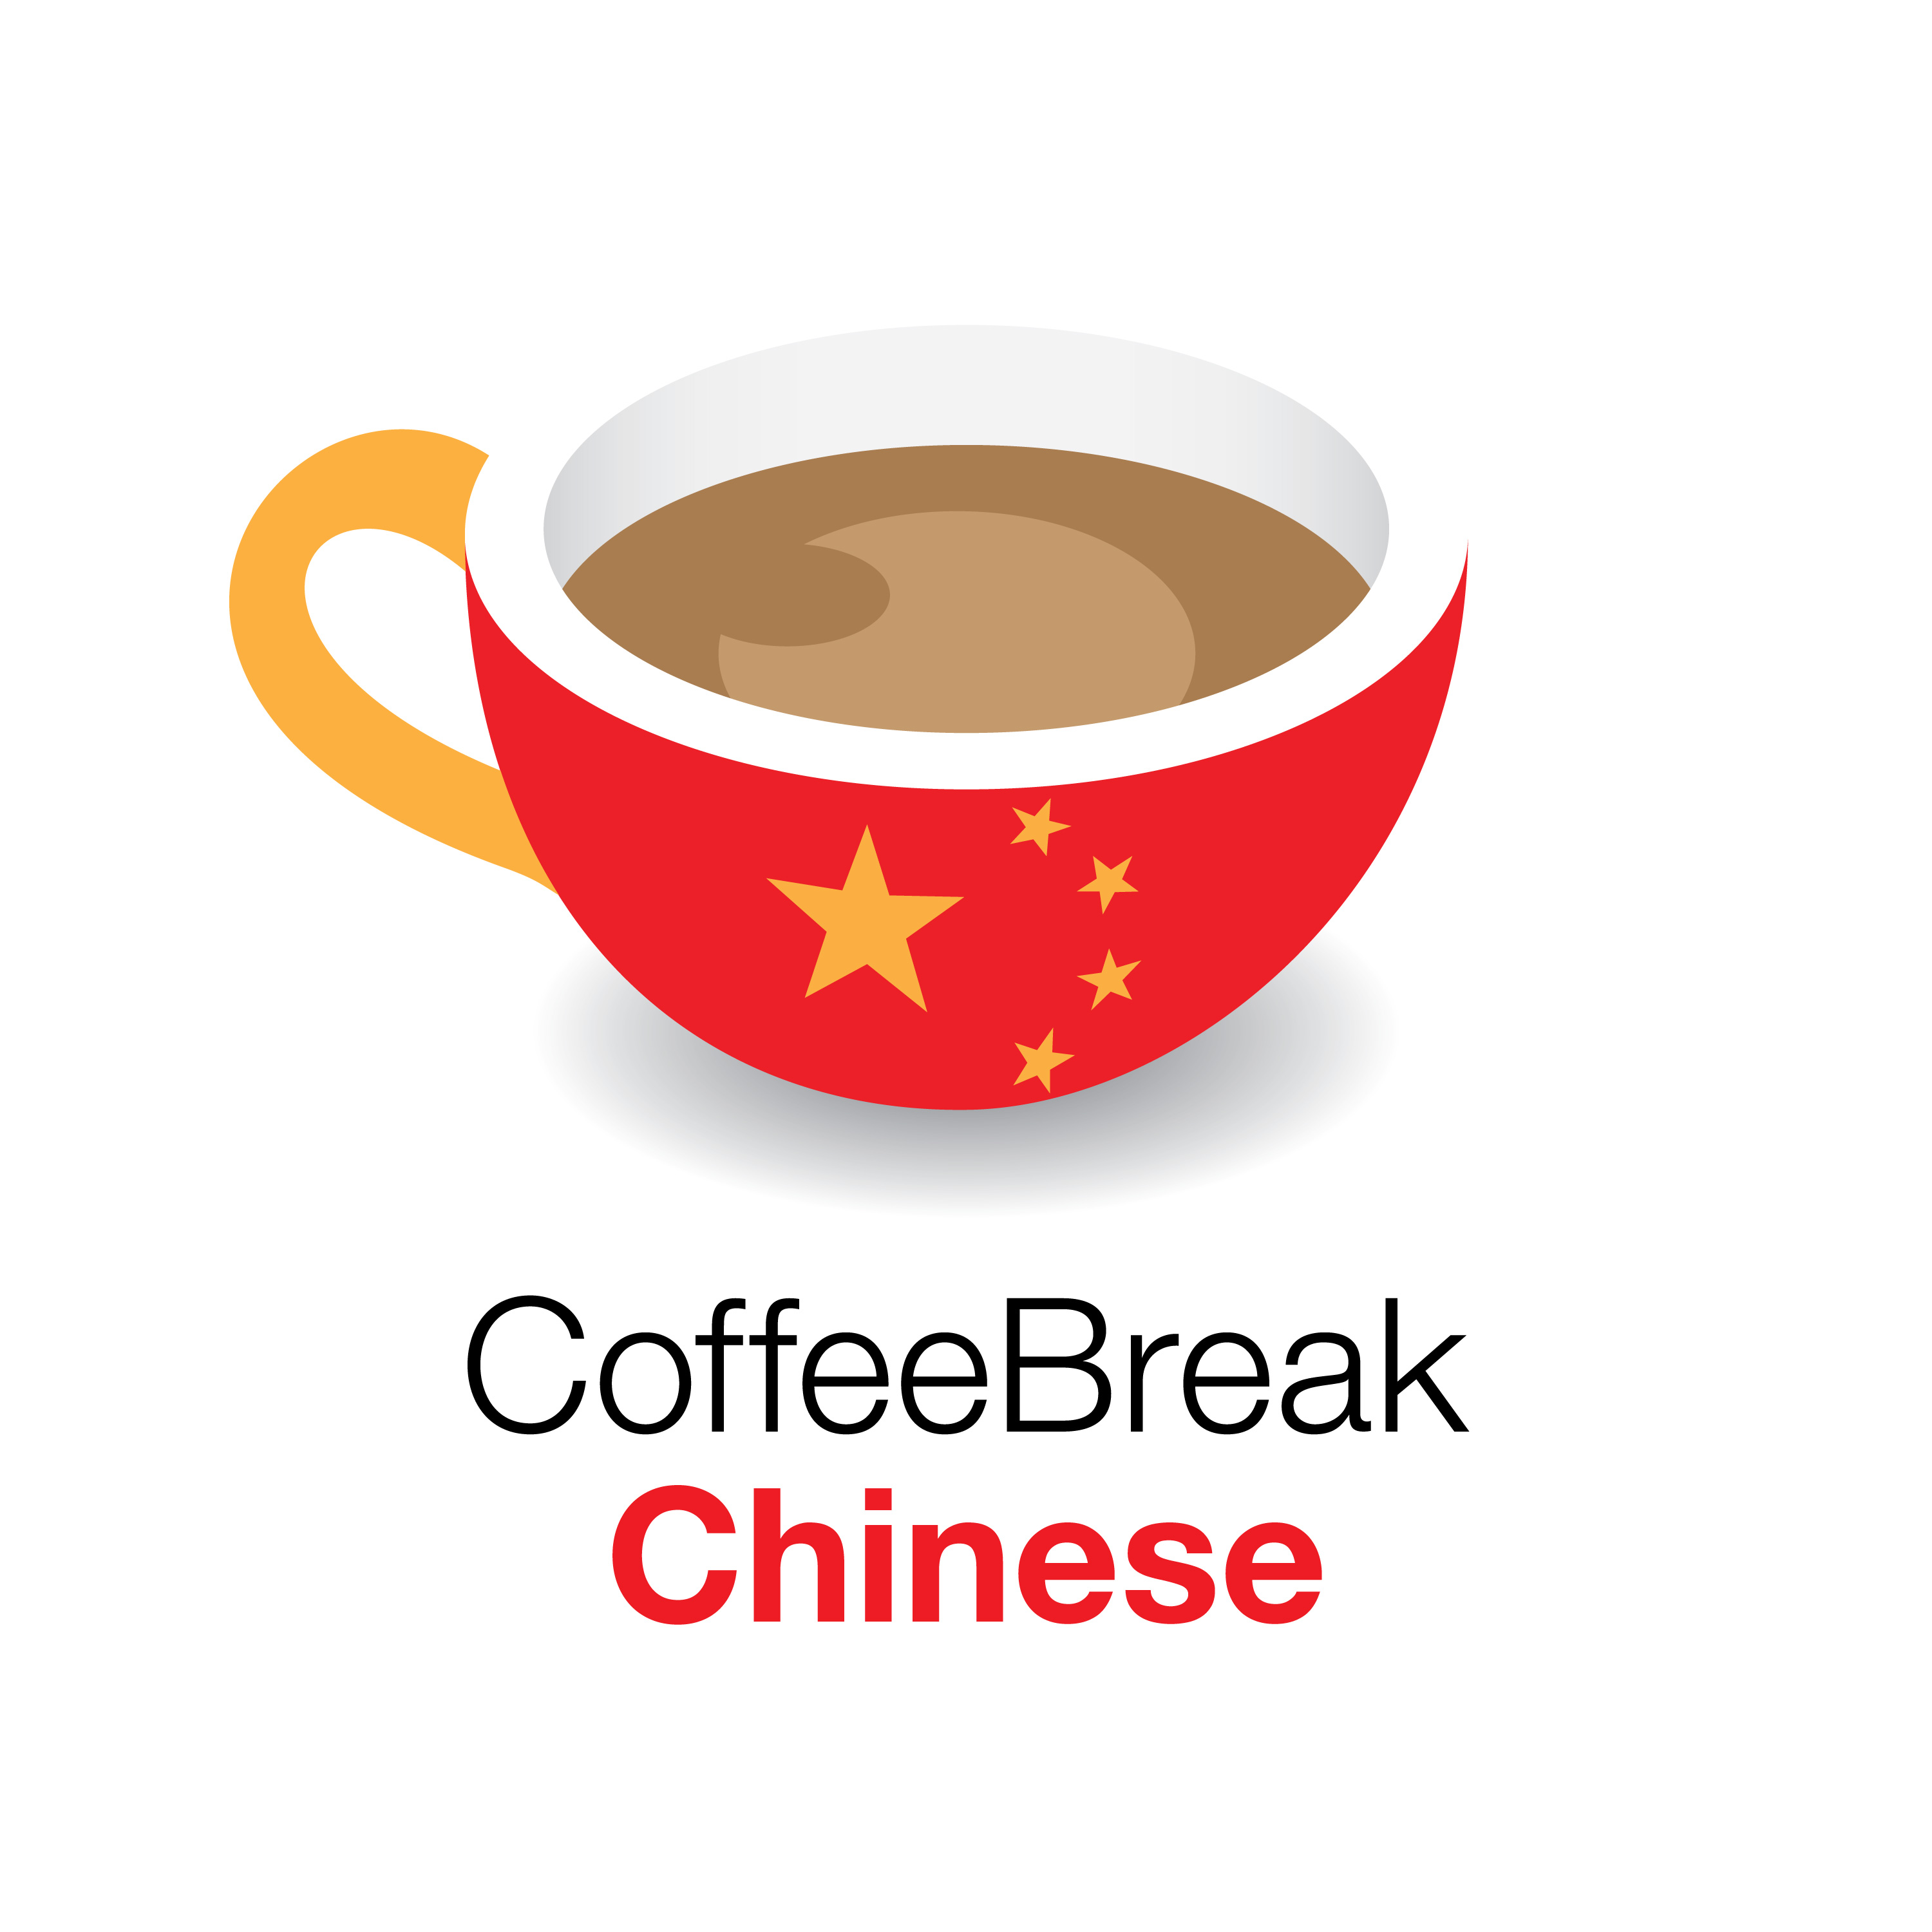 Cbc 102 Greetings And Introductions In Mandarin Coffee Break